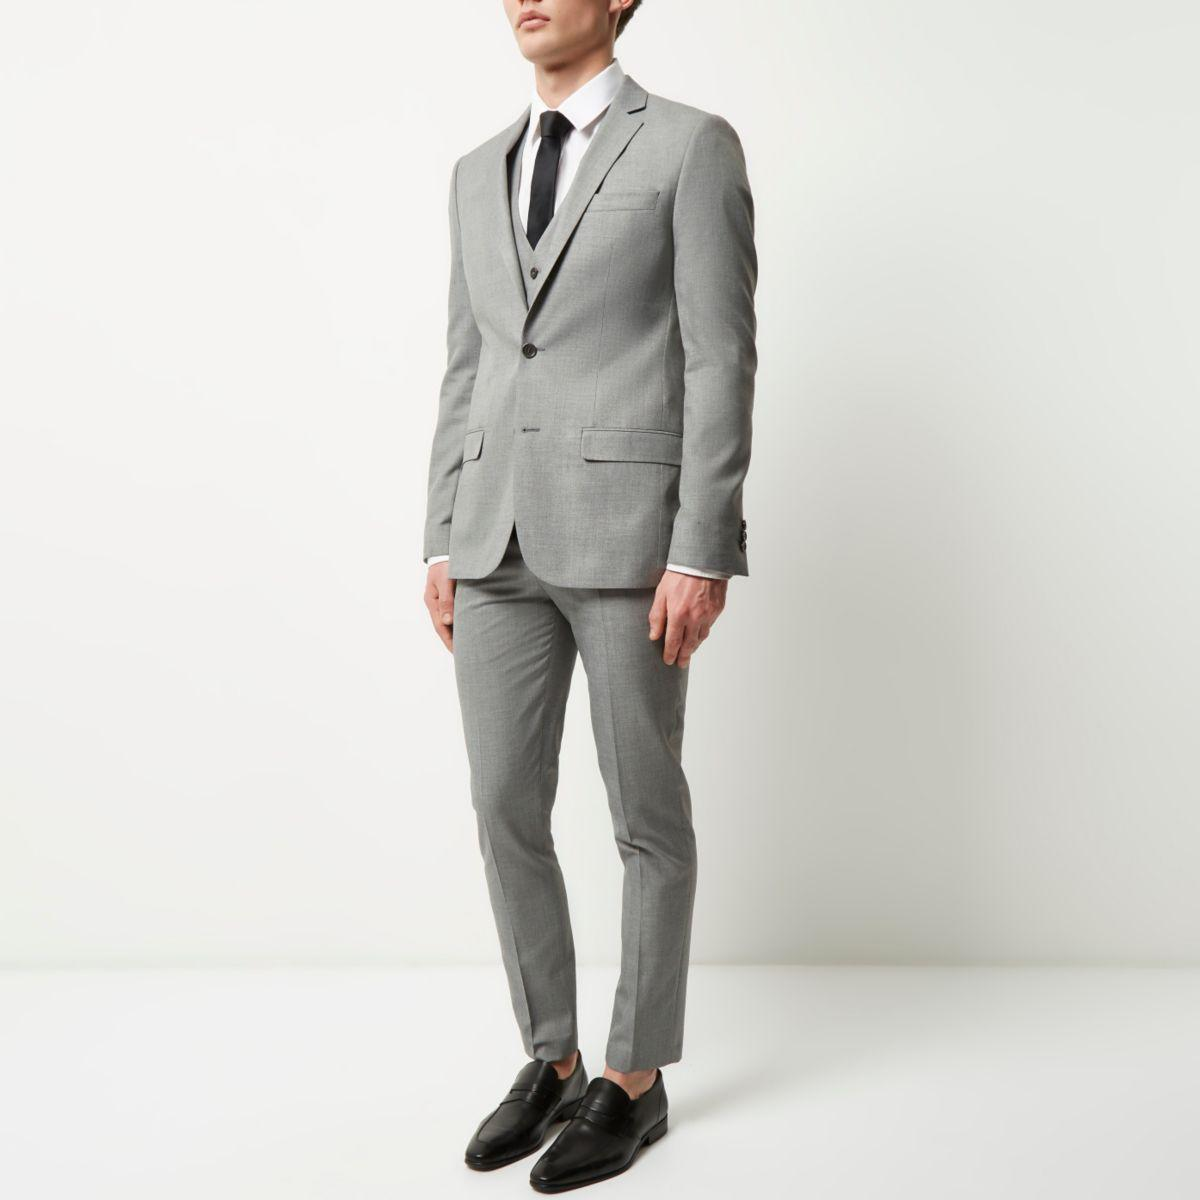 River island Light Grey Skinny Suit Jacket in Gray for Men | Lyst